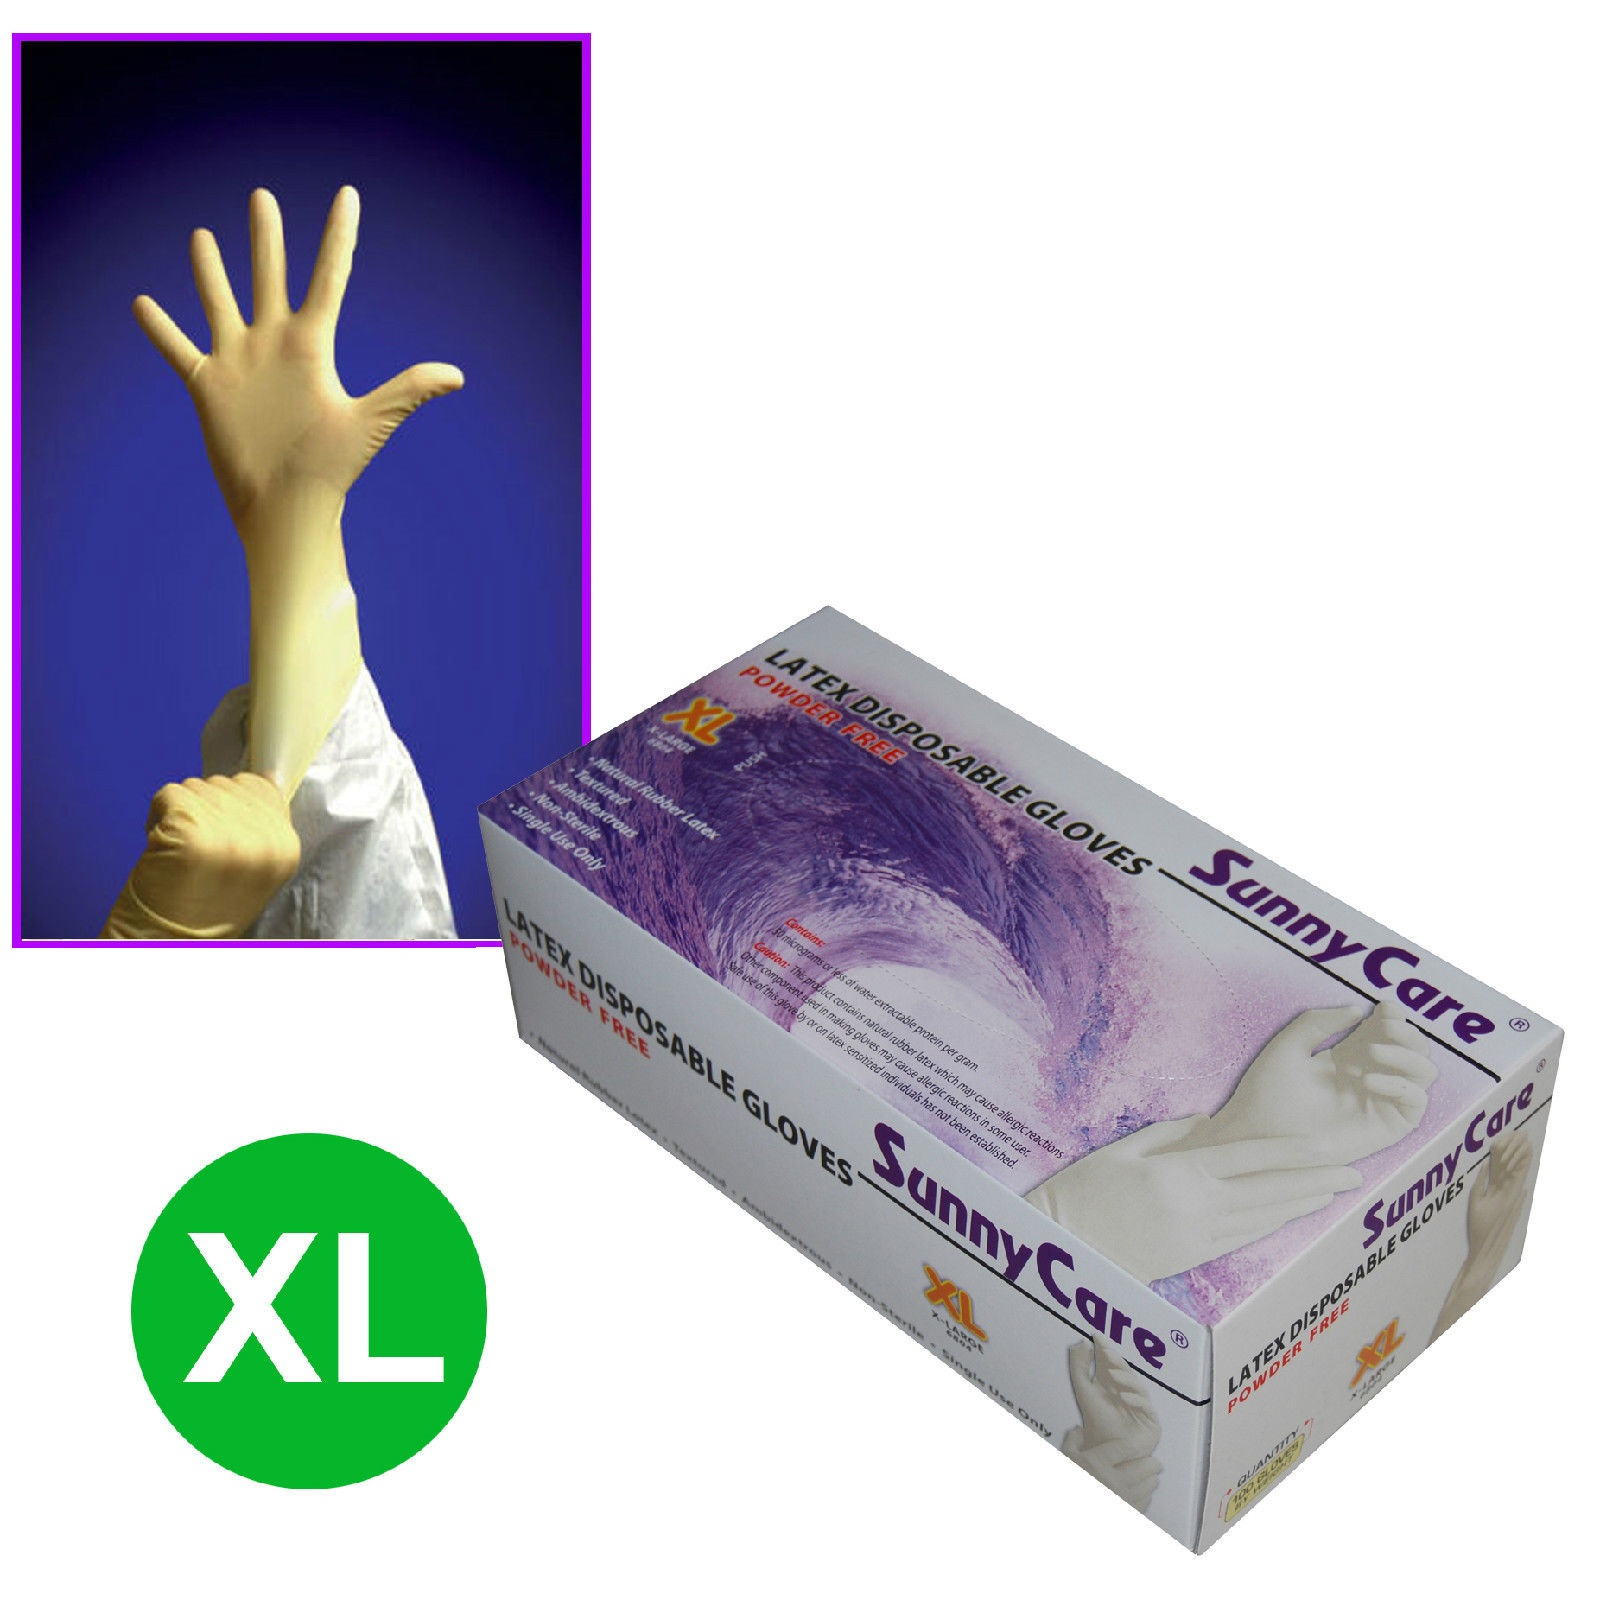 Sunnycare 174 Sunnycare 174 Latex Disposable Gloves X Large